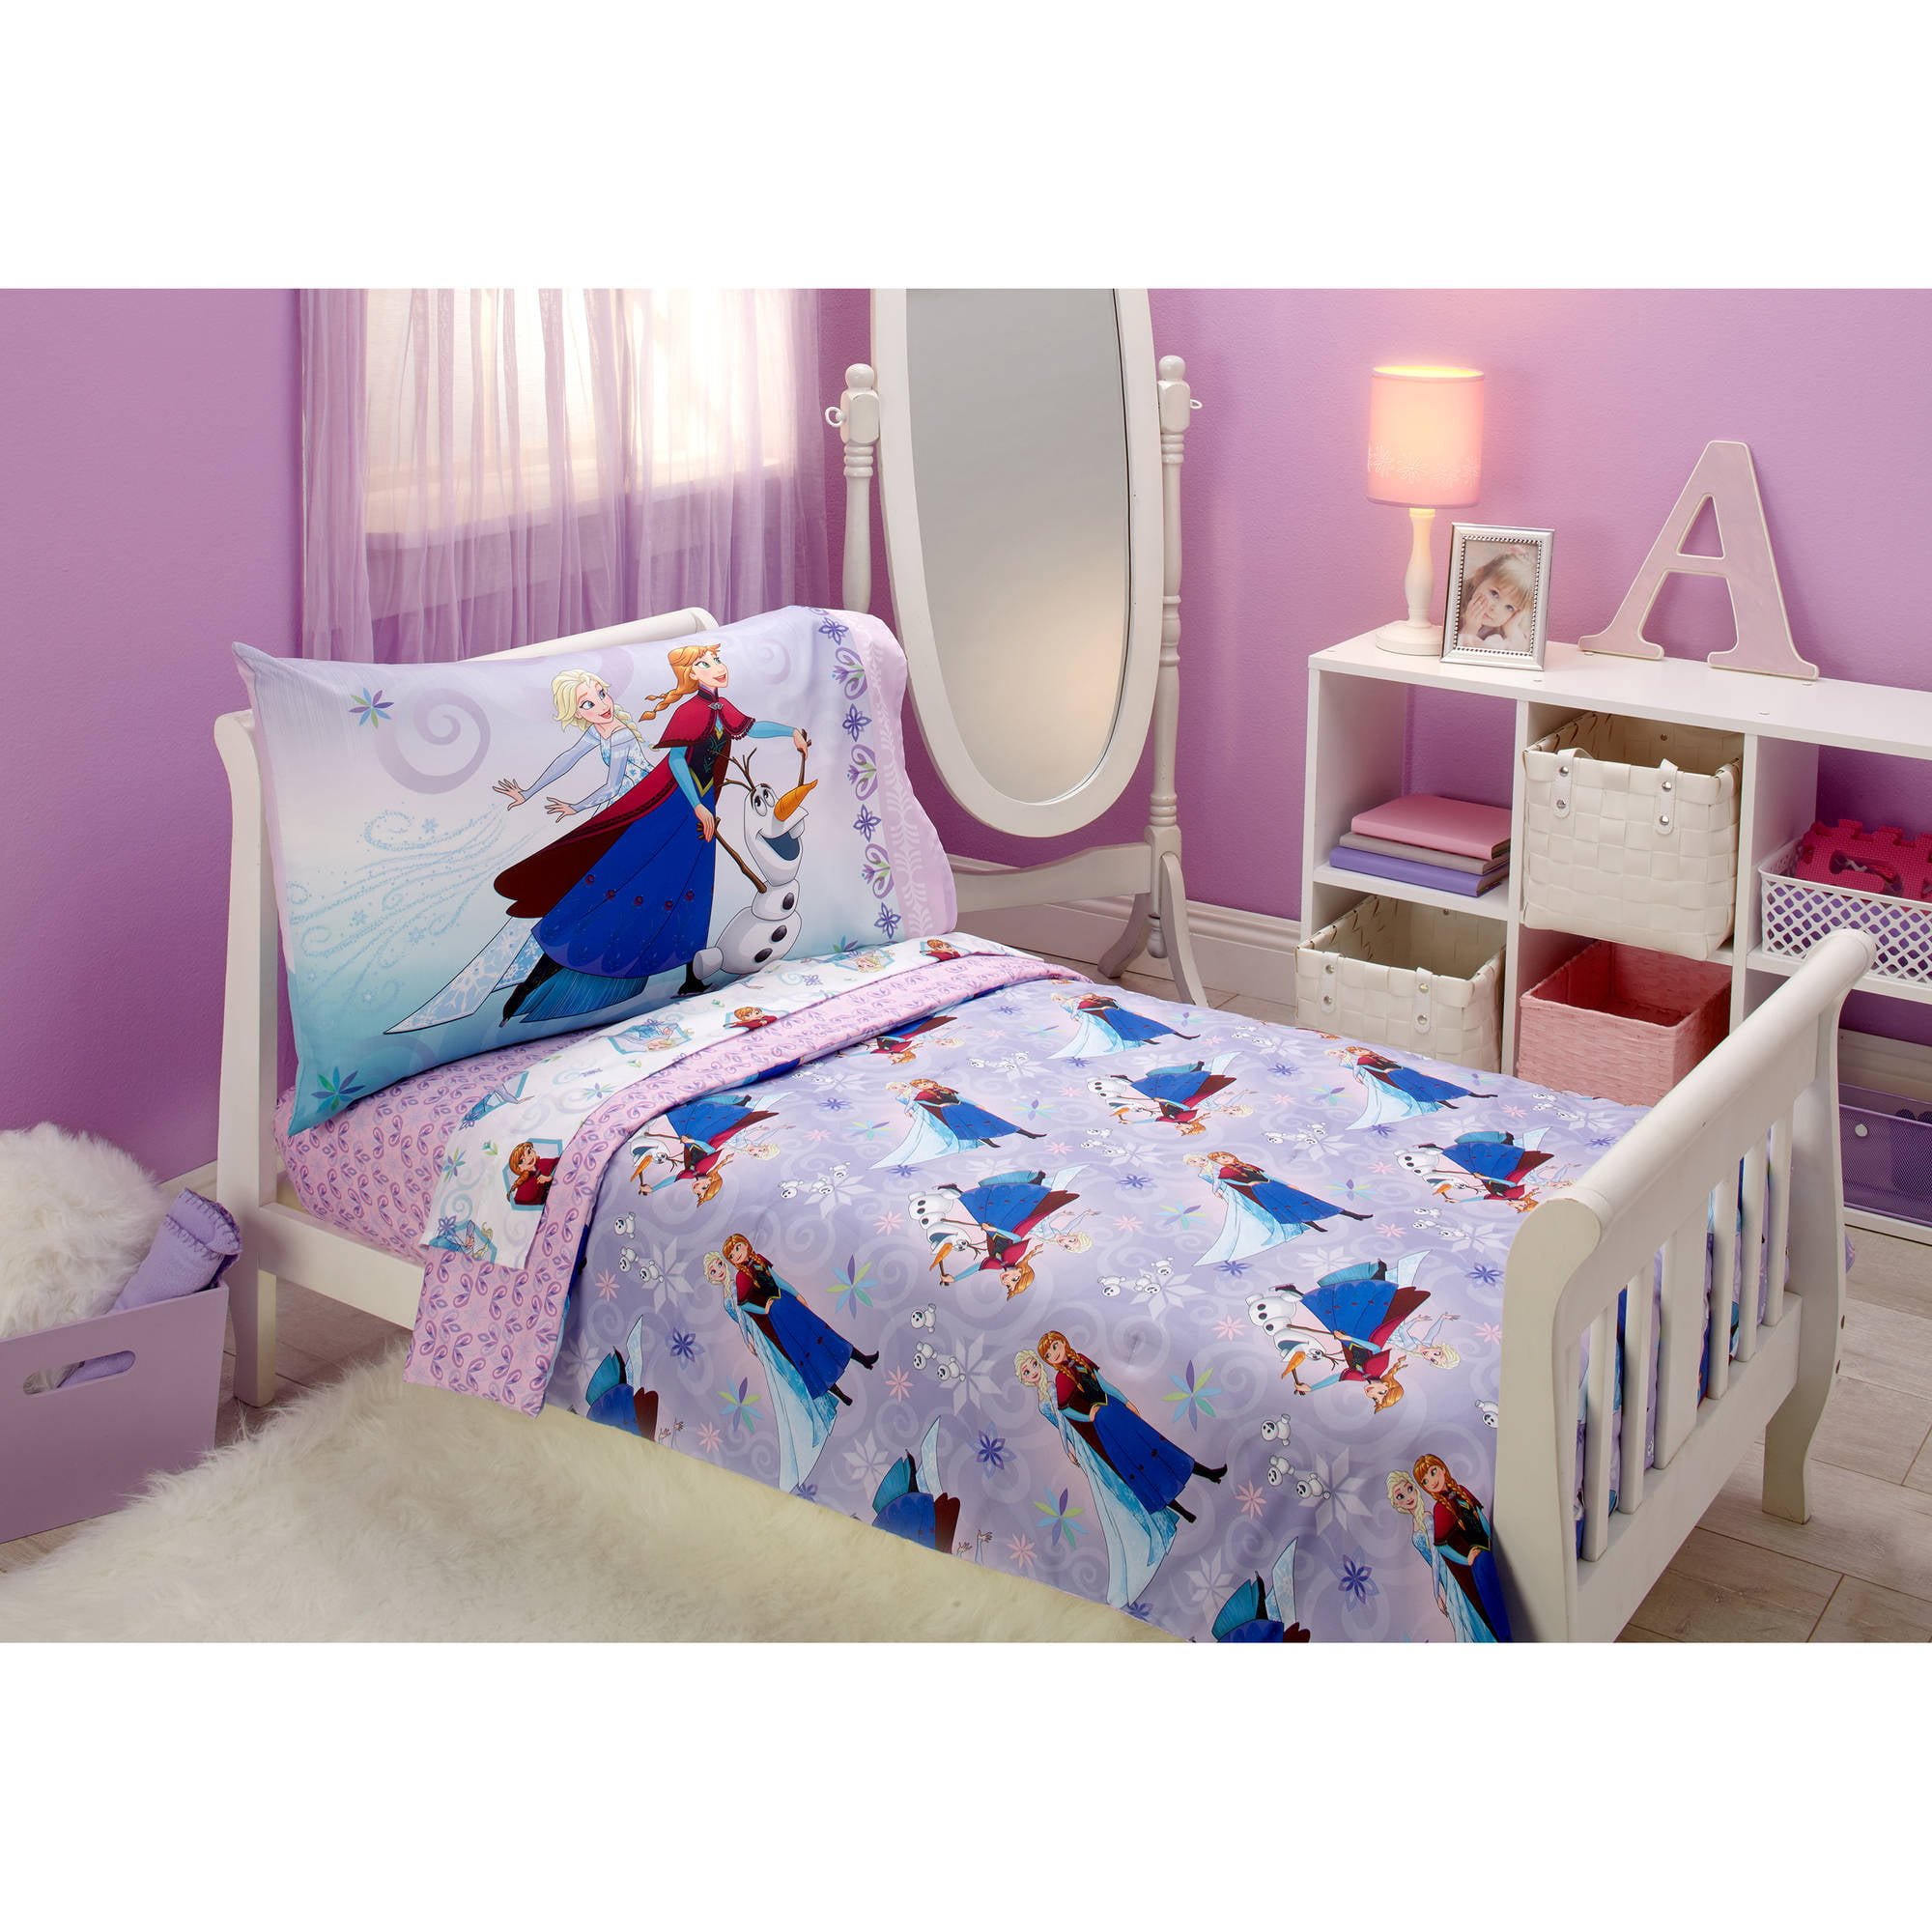 Disney Frozen 4 Piece Toddler Bedding Set Unleash The